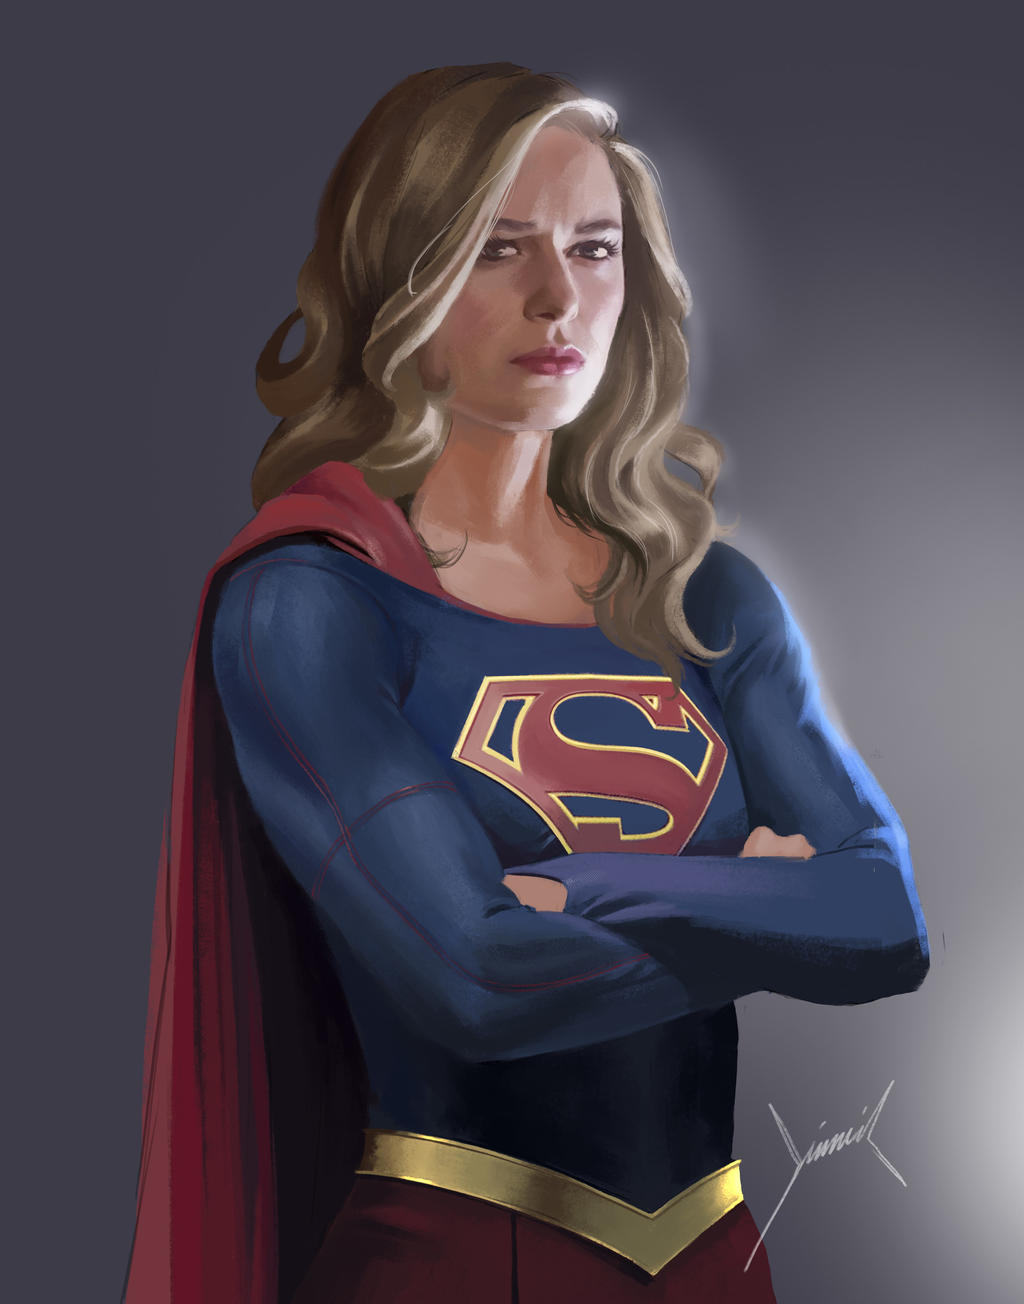 Supergirl by PapurrCat